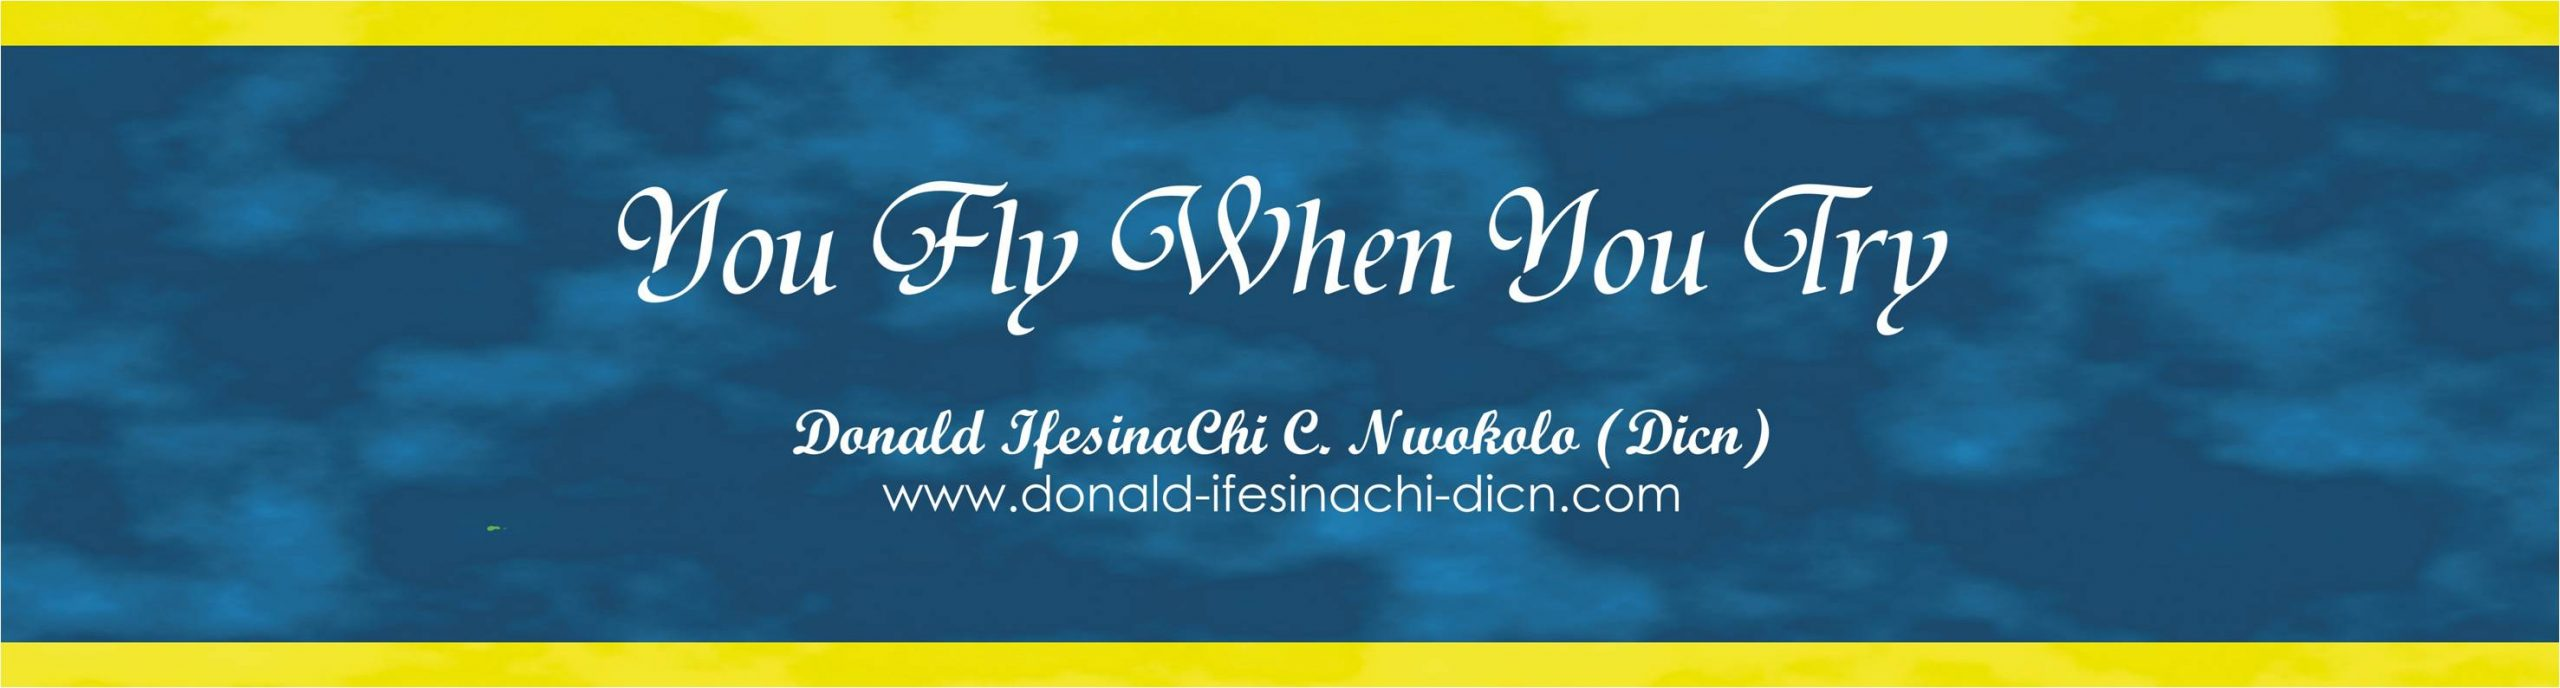 Quote By Donald IfesinaChi Dicn